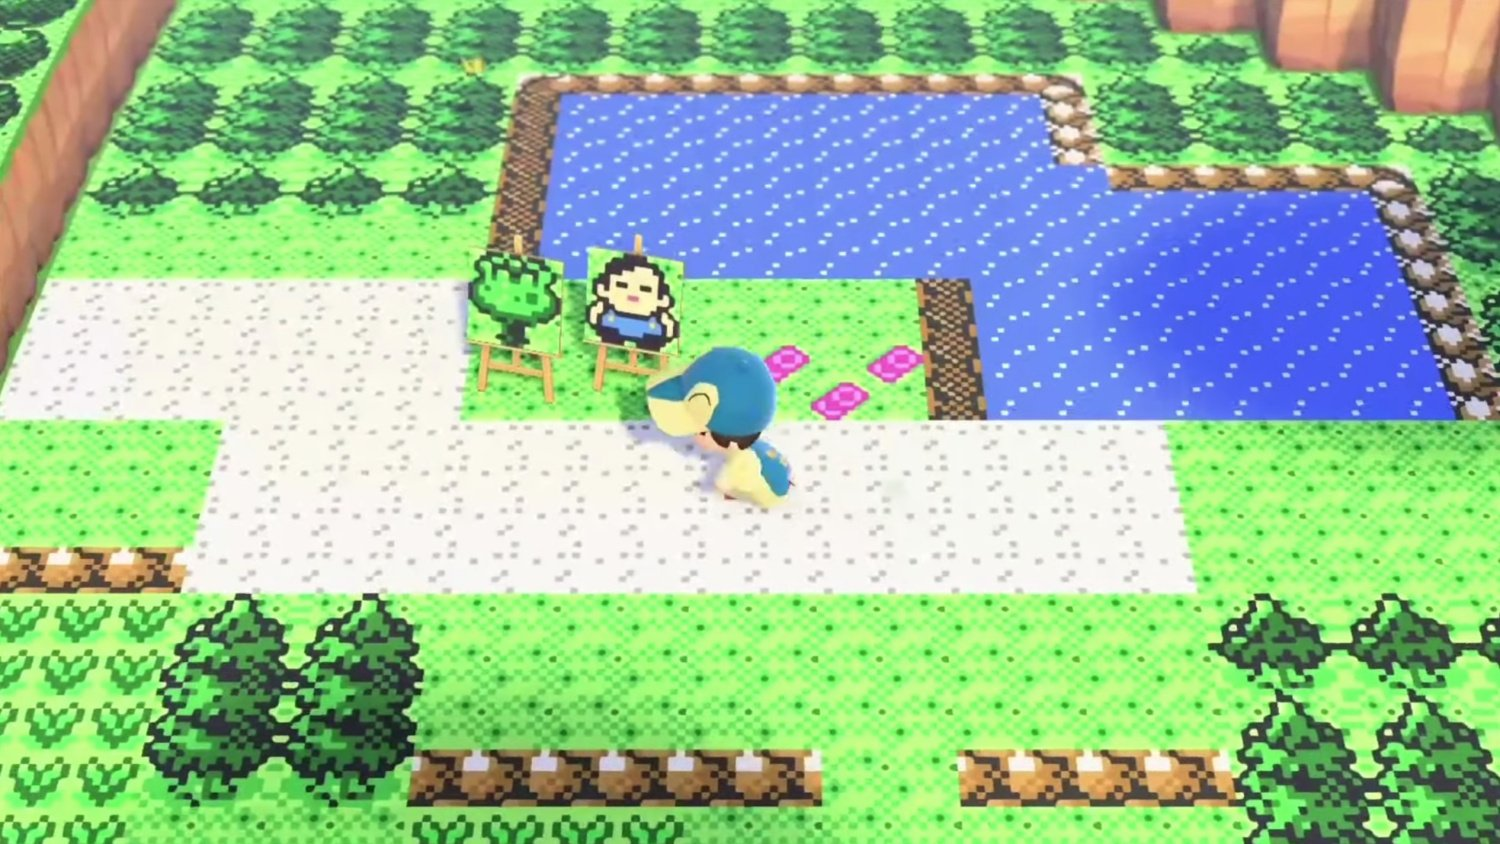 Random Pokemon Gold And Silver Recreated In Animal Crossing New Horizons Is Absolutely Mindblowing Nintendo Life